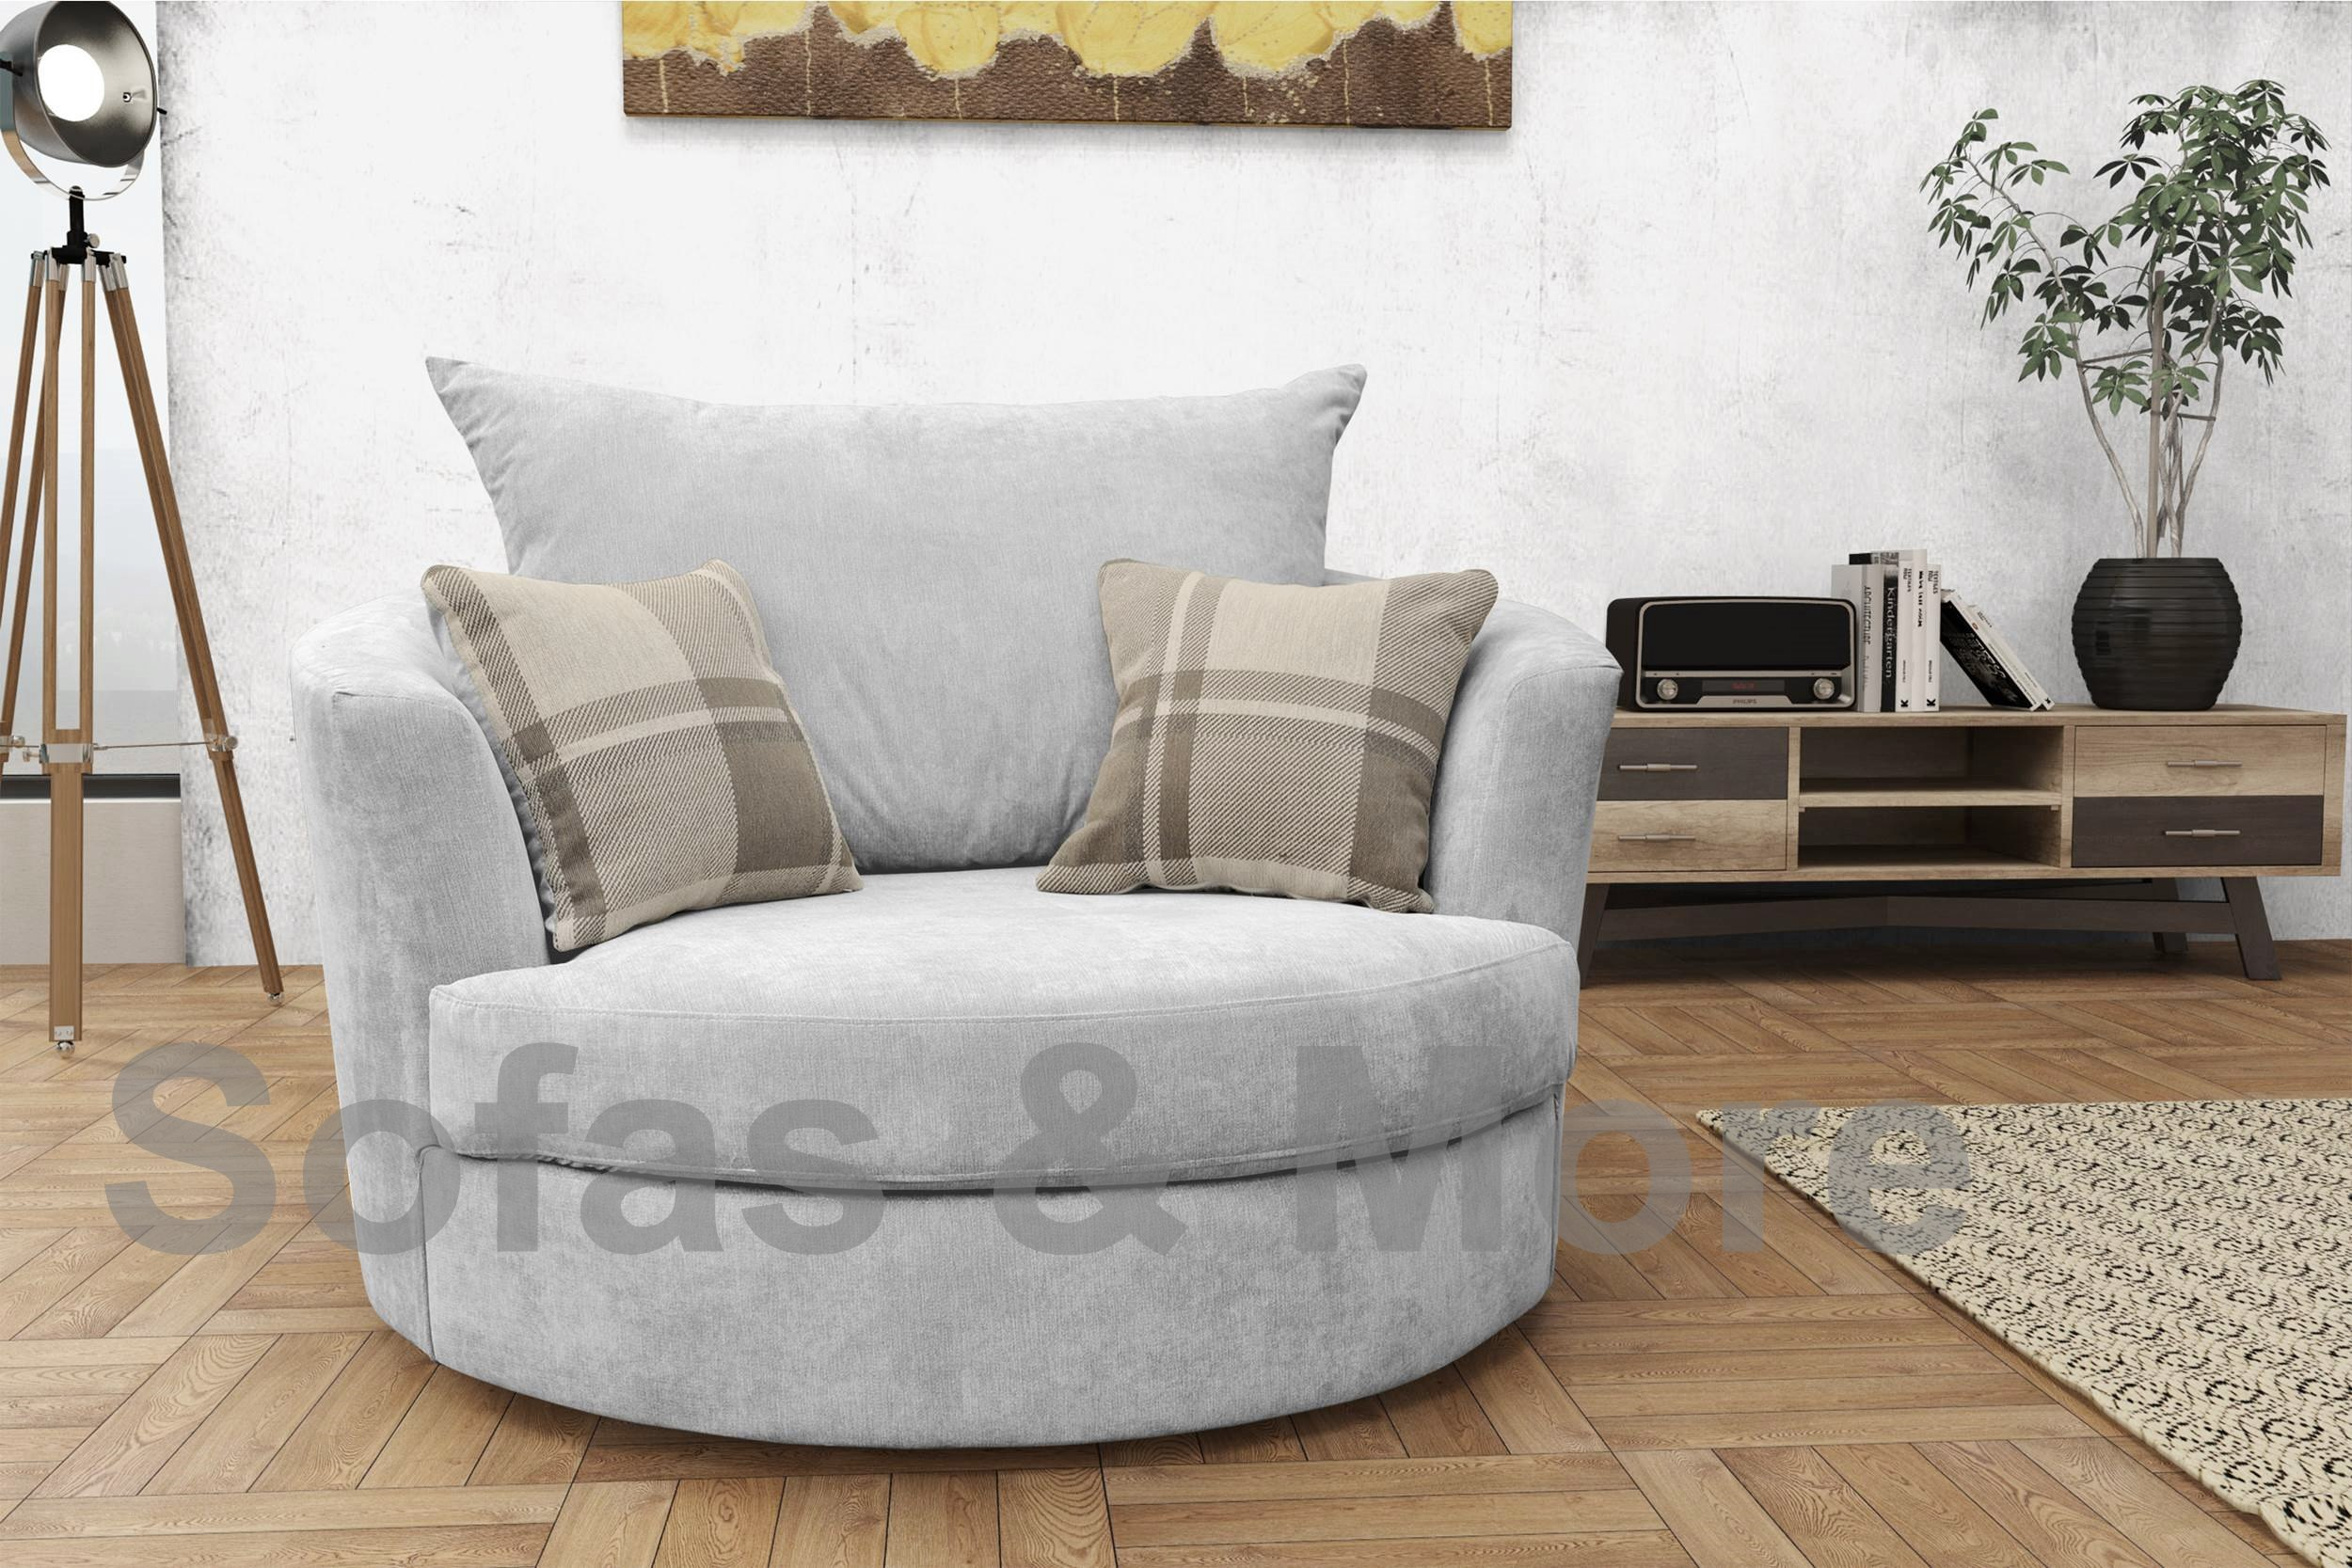 round swivel cuddle chair baby sitting for eating big corner sofa suite verona fabric, 3+2 seater, armchair- light grey | ebay